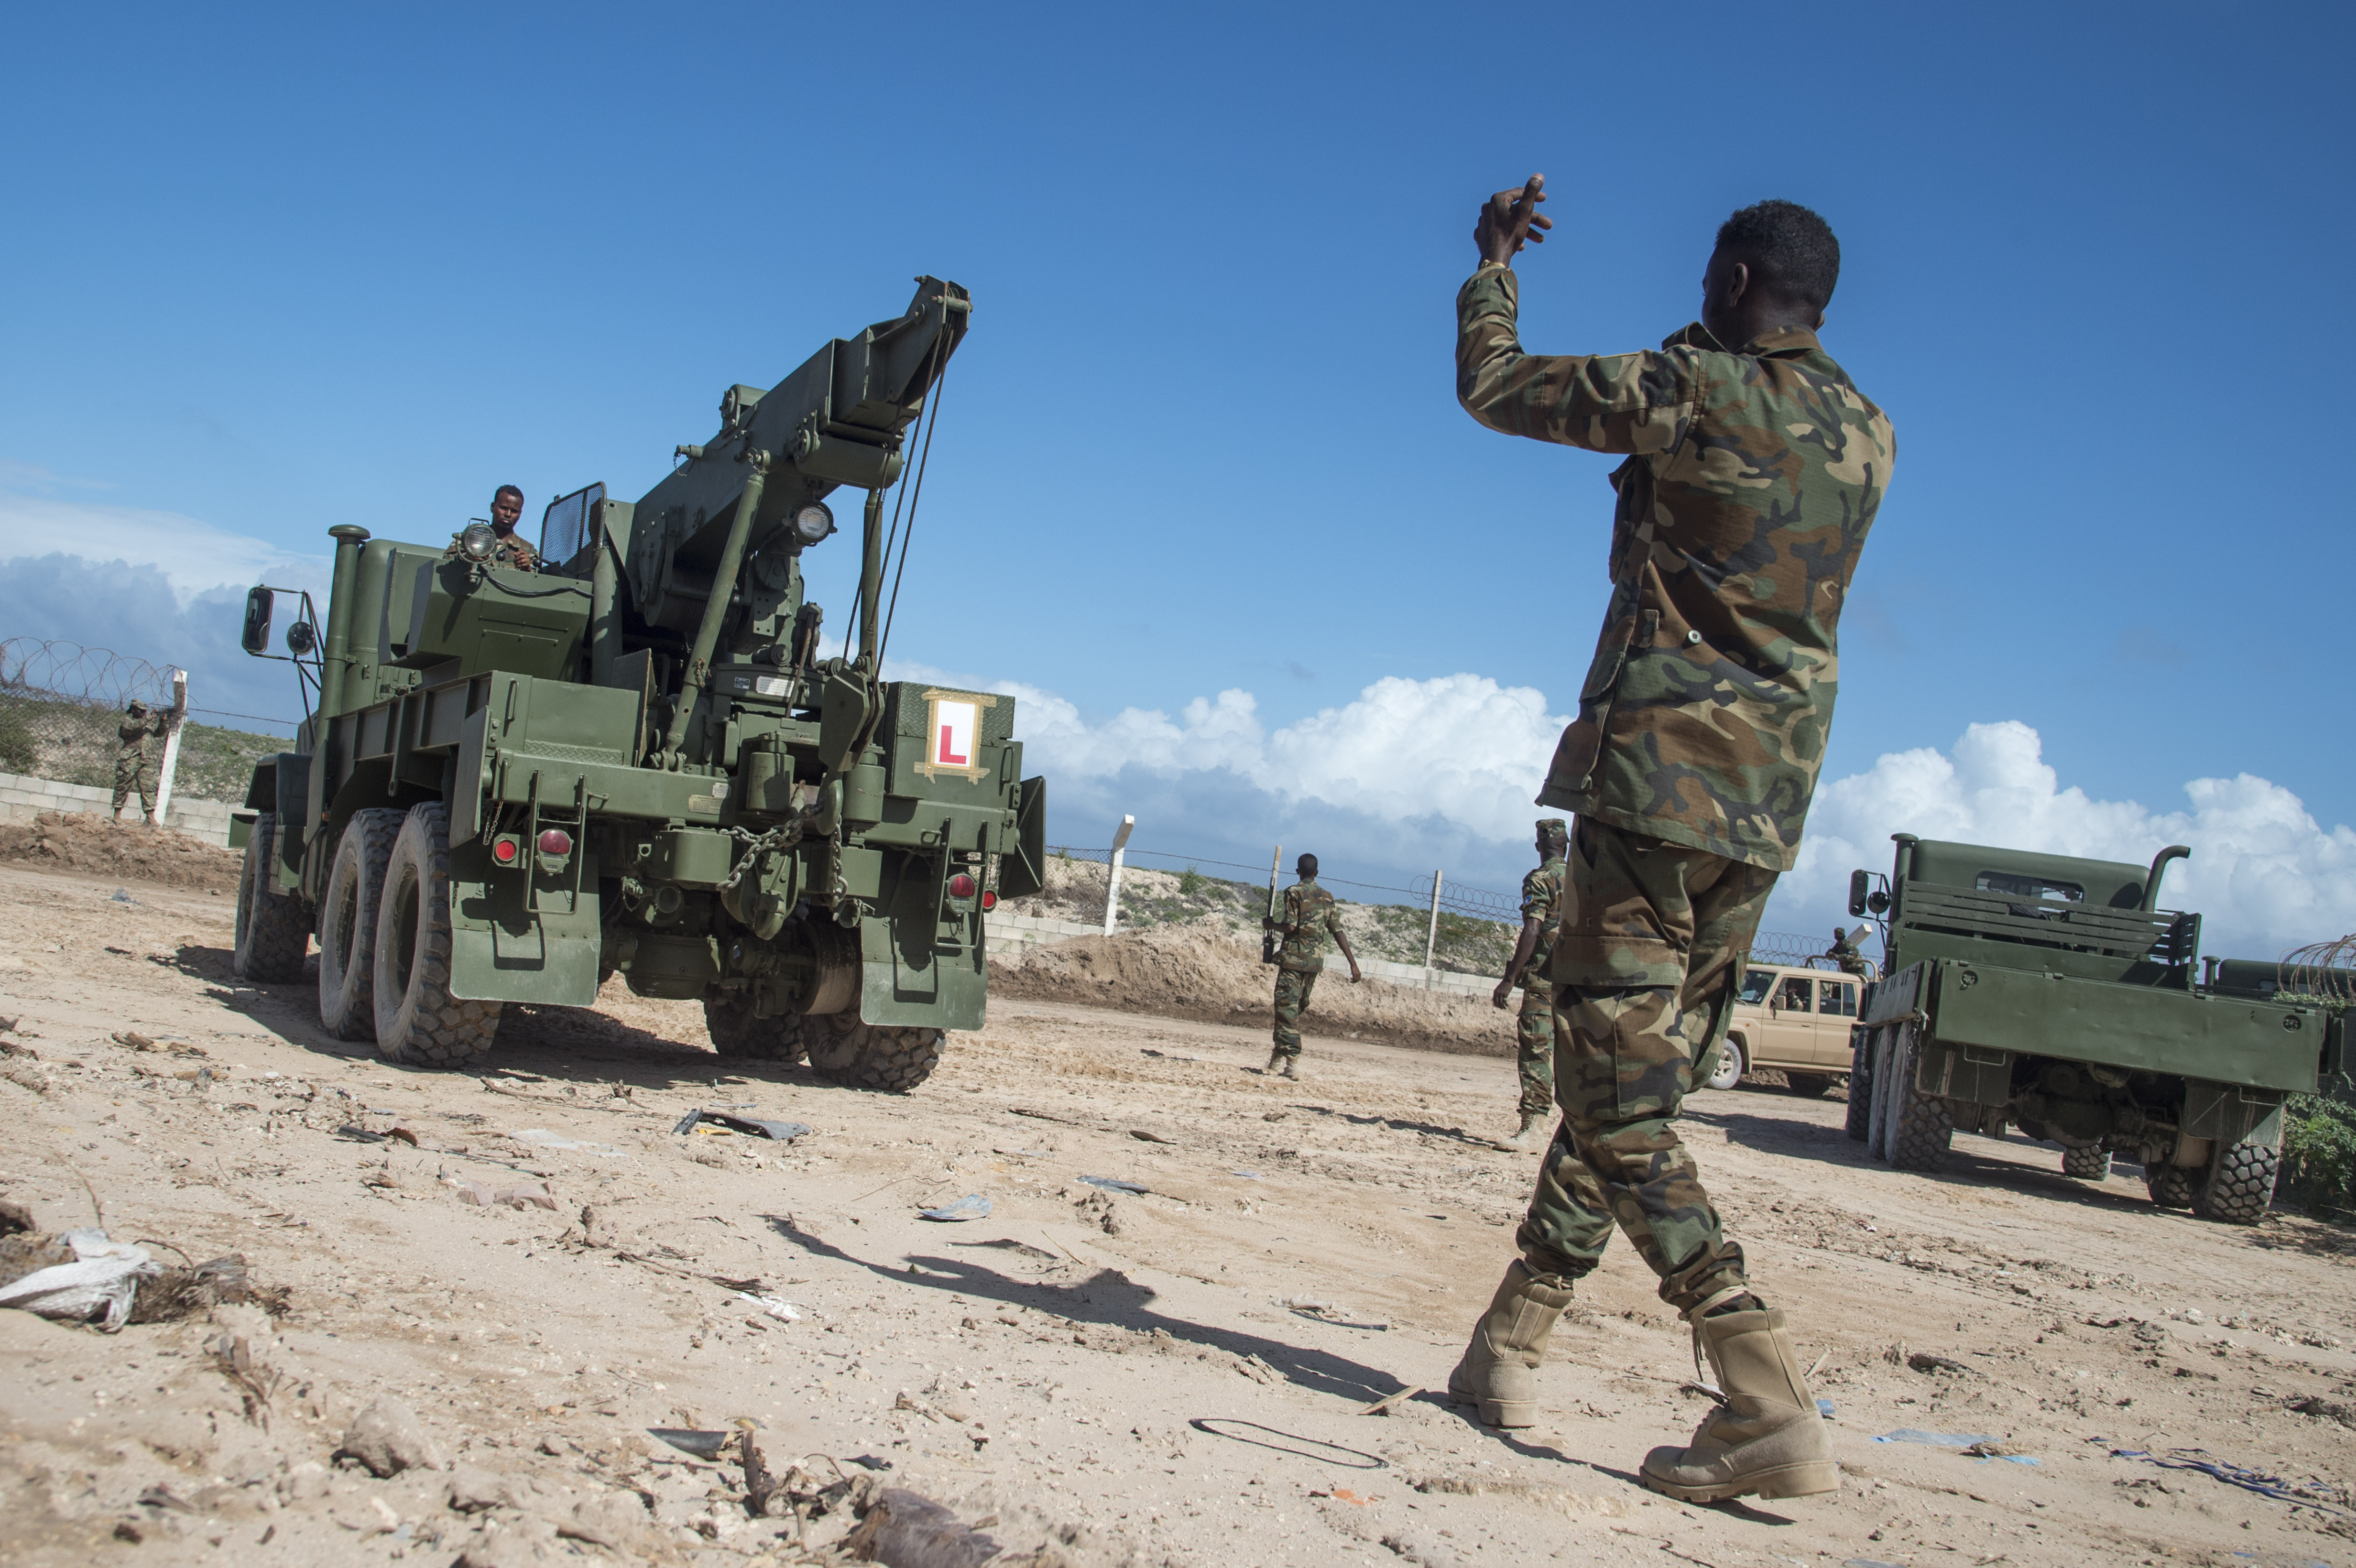 Somali National Army soldiers of the Danab battalion conduct convoy operations training with the U.S. Army's 101st Airborne Division May 22, 2017, in Mogadishu, Somalia. The logistics course focused on various aspects of moving personnel, equipment and supplies. (U.S. Air National Guard photo by Tech. Sgt. Joe Harwood)